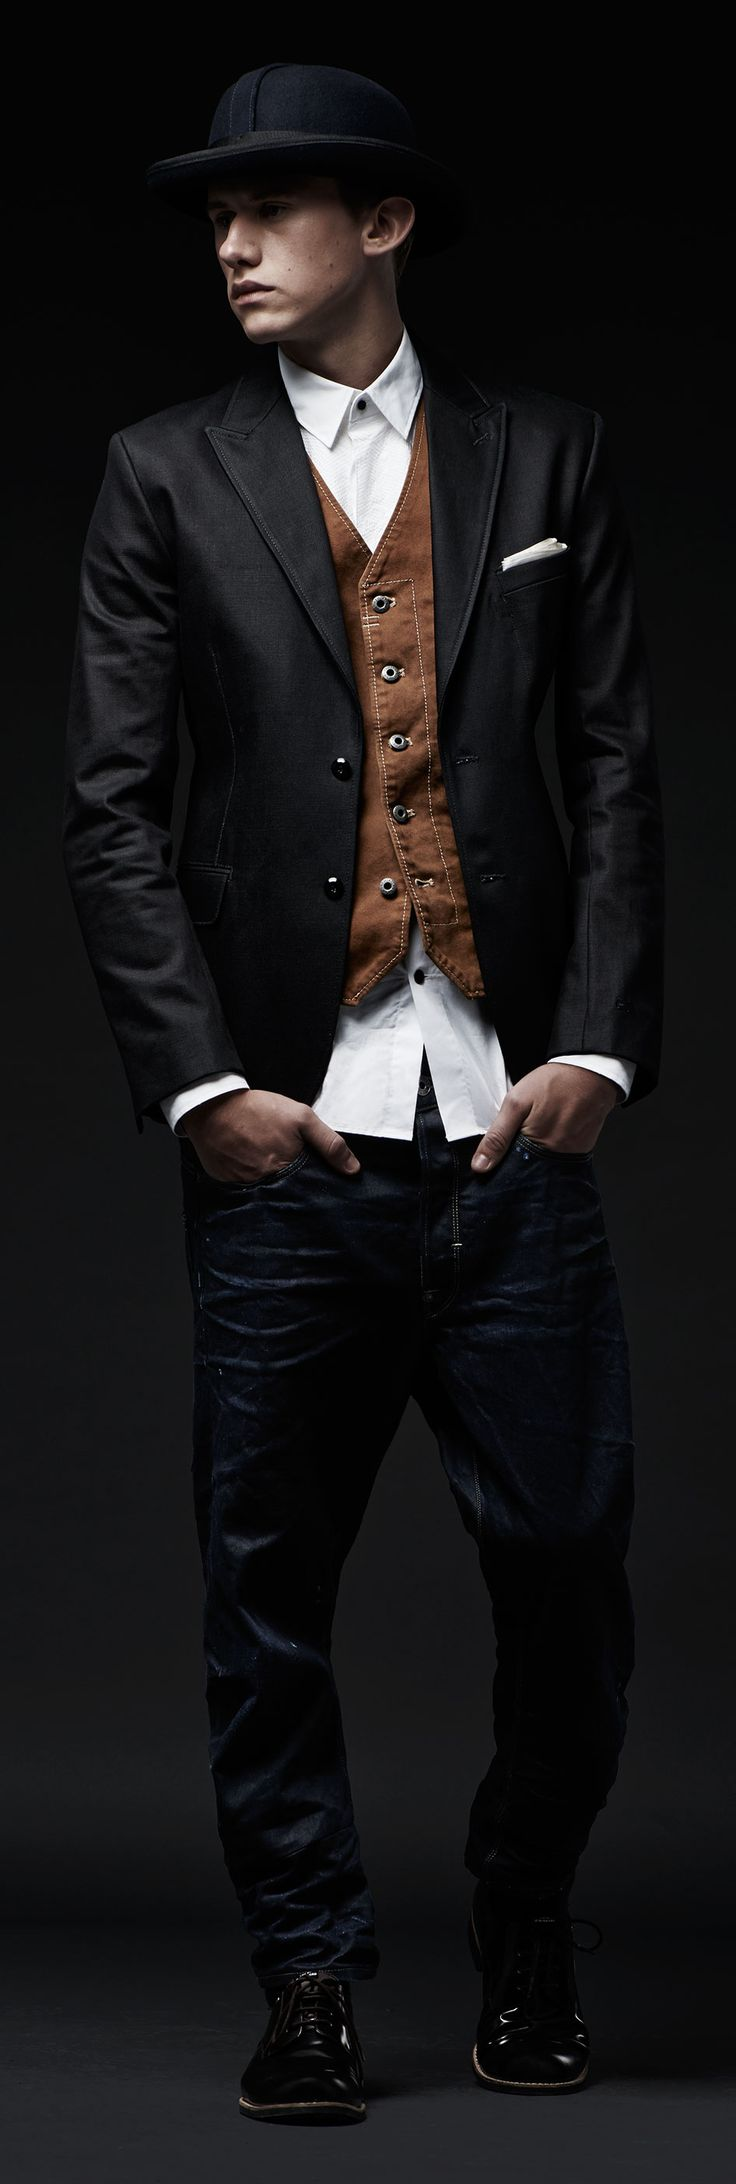 G-STAR RAW MIDNIGHT COLLECTION 3-COURSE DINNER Denim and canvas in cultured cuts for raising a glass to the season https://www.g-star.com/collection/men/midnight-look-1